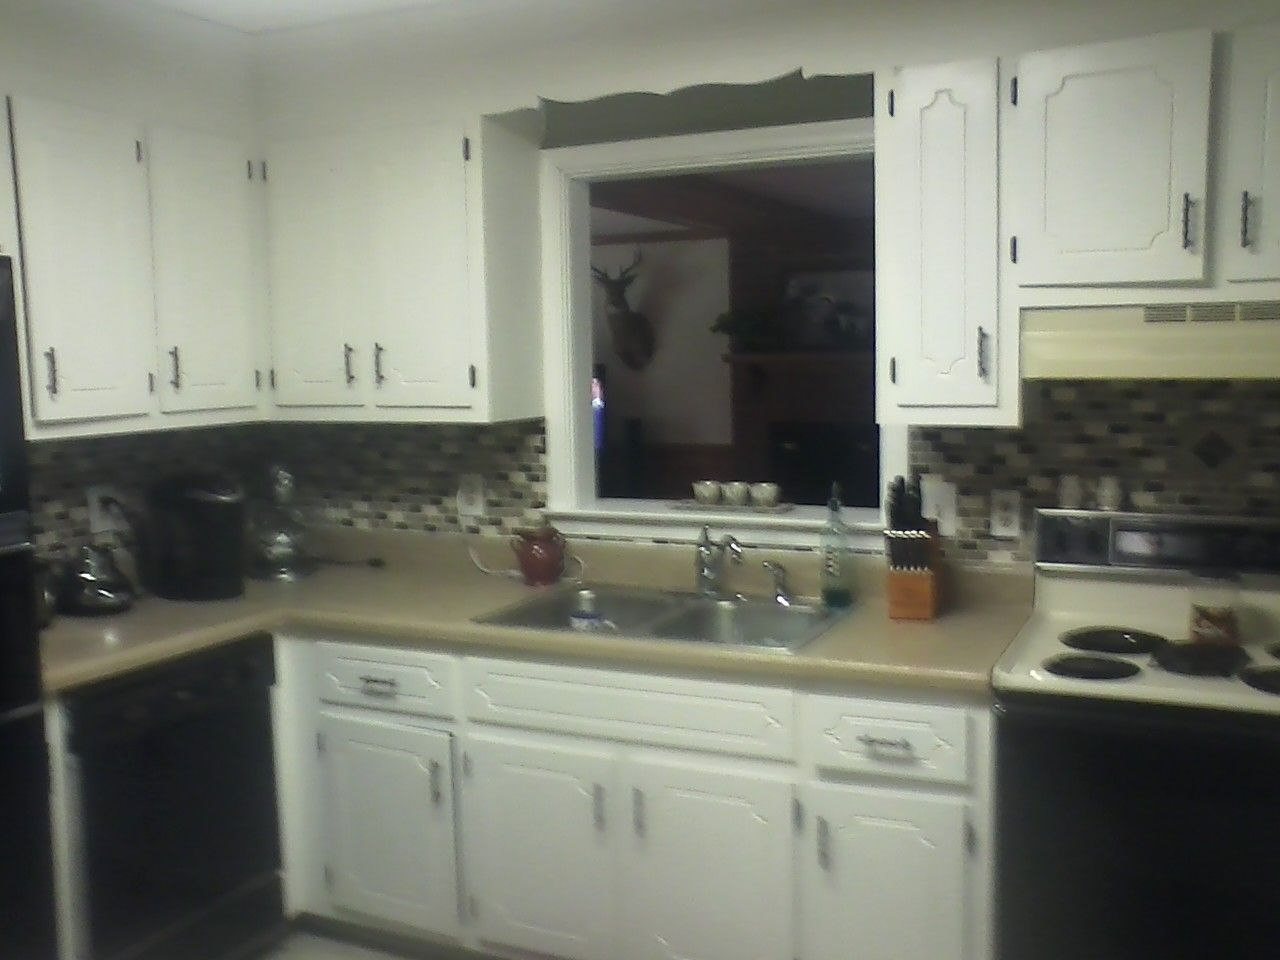 Pin by Laura Gray on Need to re do my kitchen  Pinterest